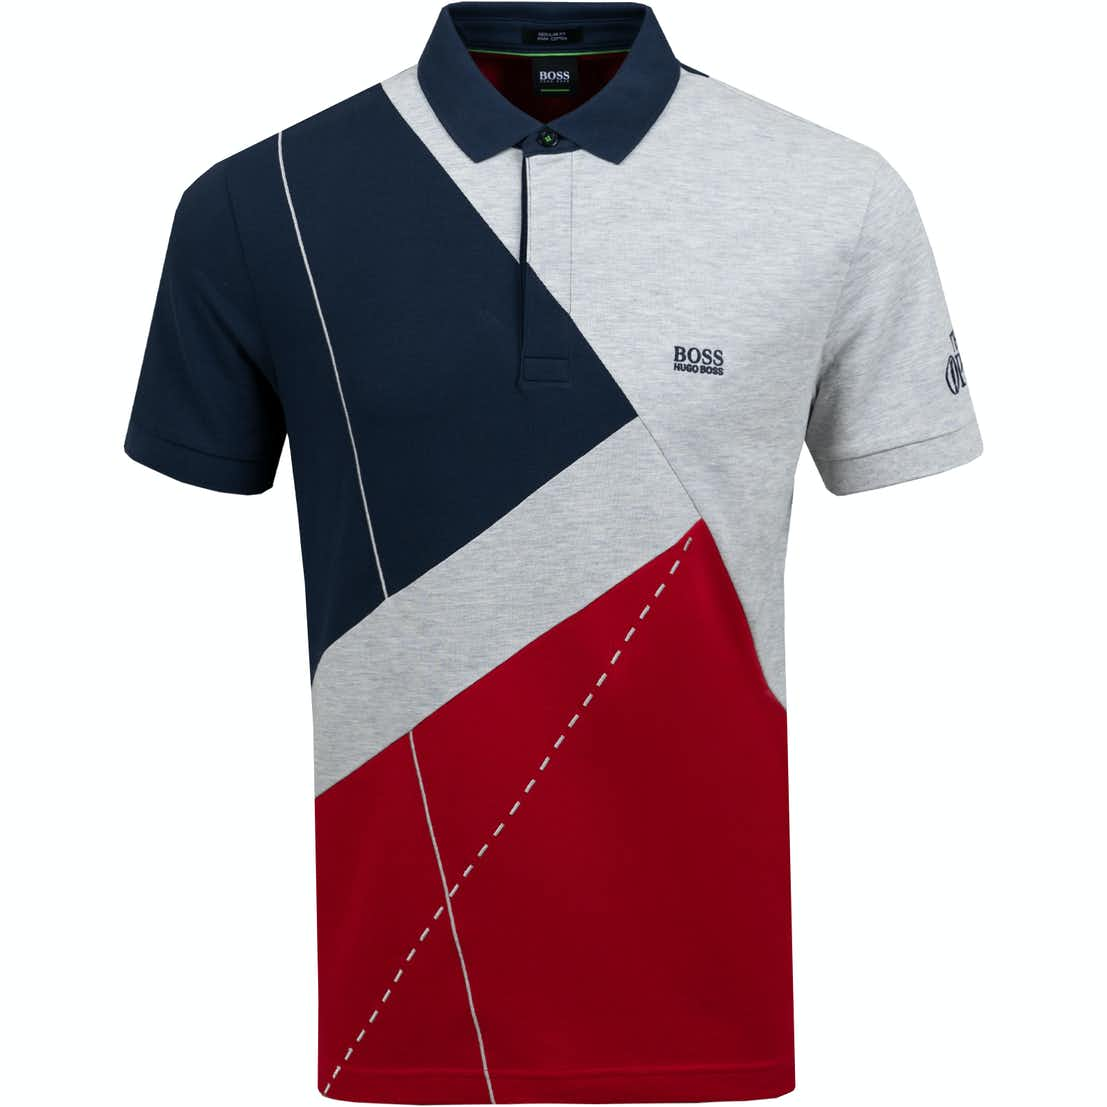 The Open BOSS Patterned Polo Shirt - Grey, Red and Blue